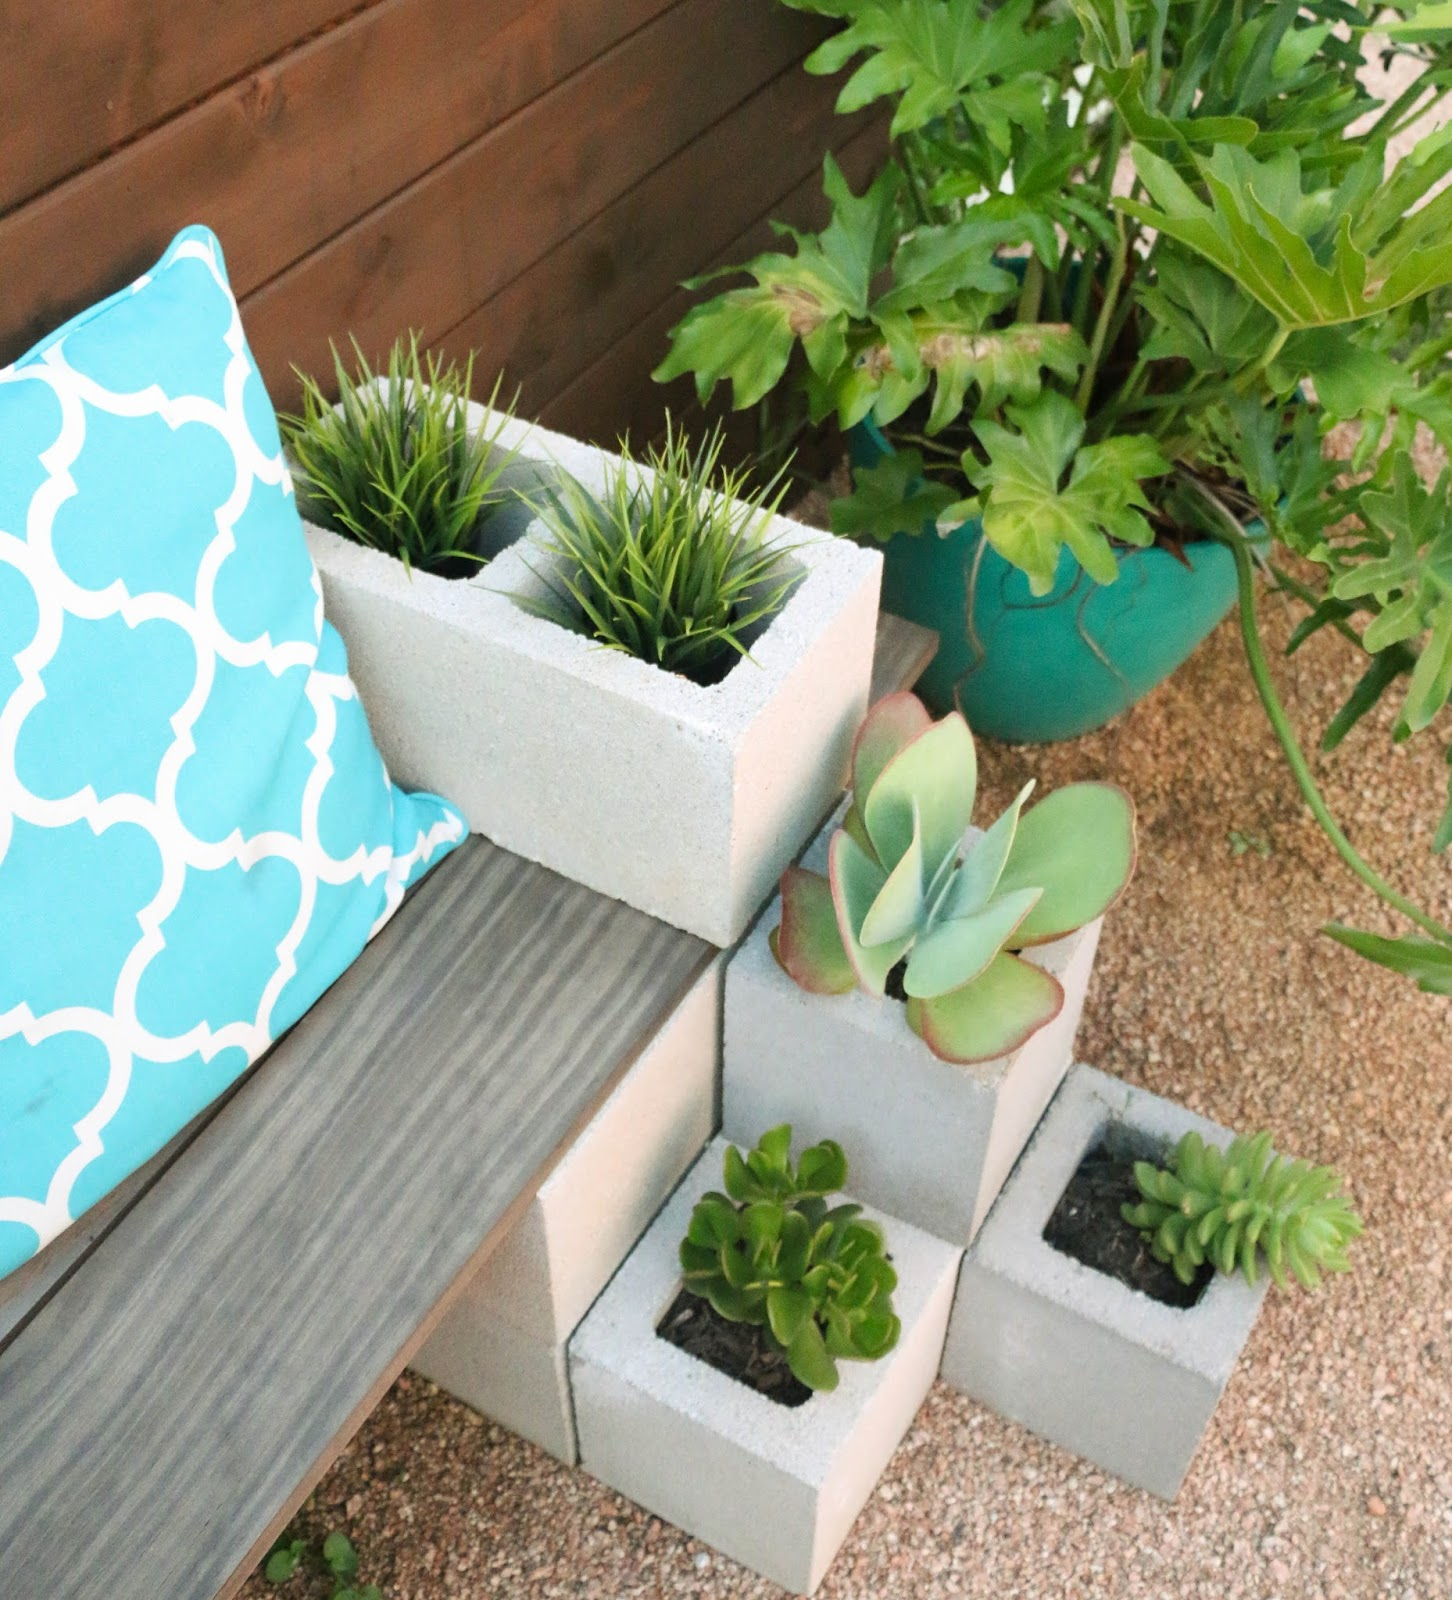 bench 25 Stunning Planter Concrete Blocks Alternatives to Transform Your Backyard And That Are All Your Front Porch Needs Interior